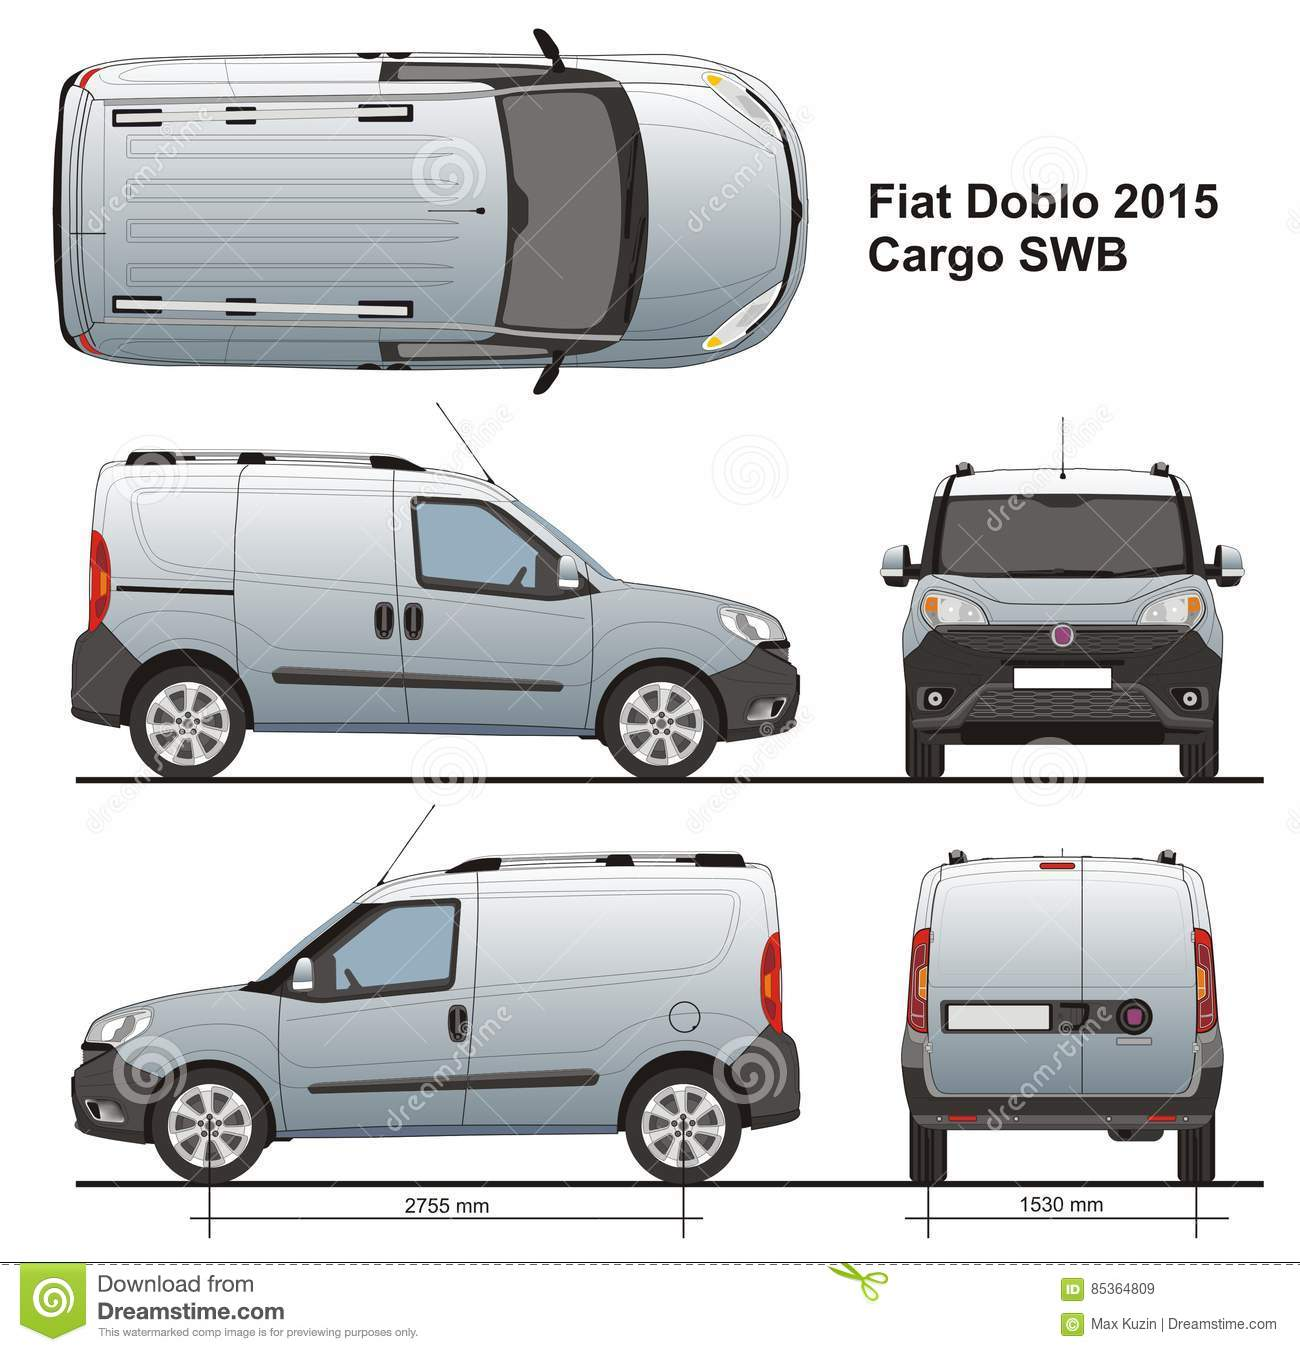 fiat doblo cargo swb 2015 editorial stock image. Black Bedroom Furniture Sets. Home Design Ideas